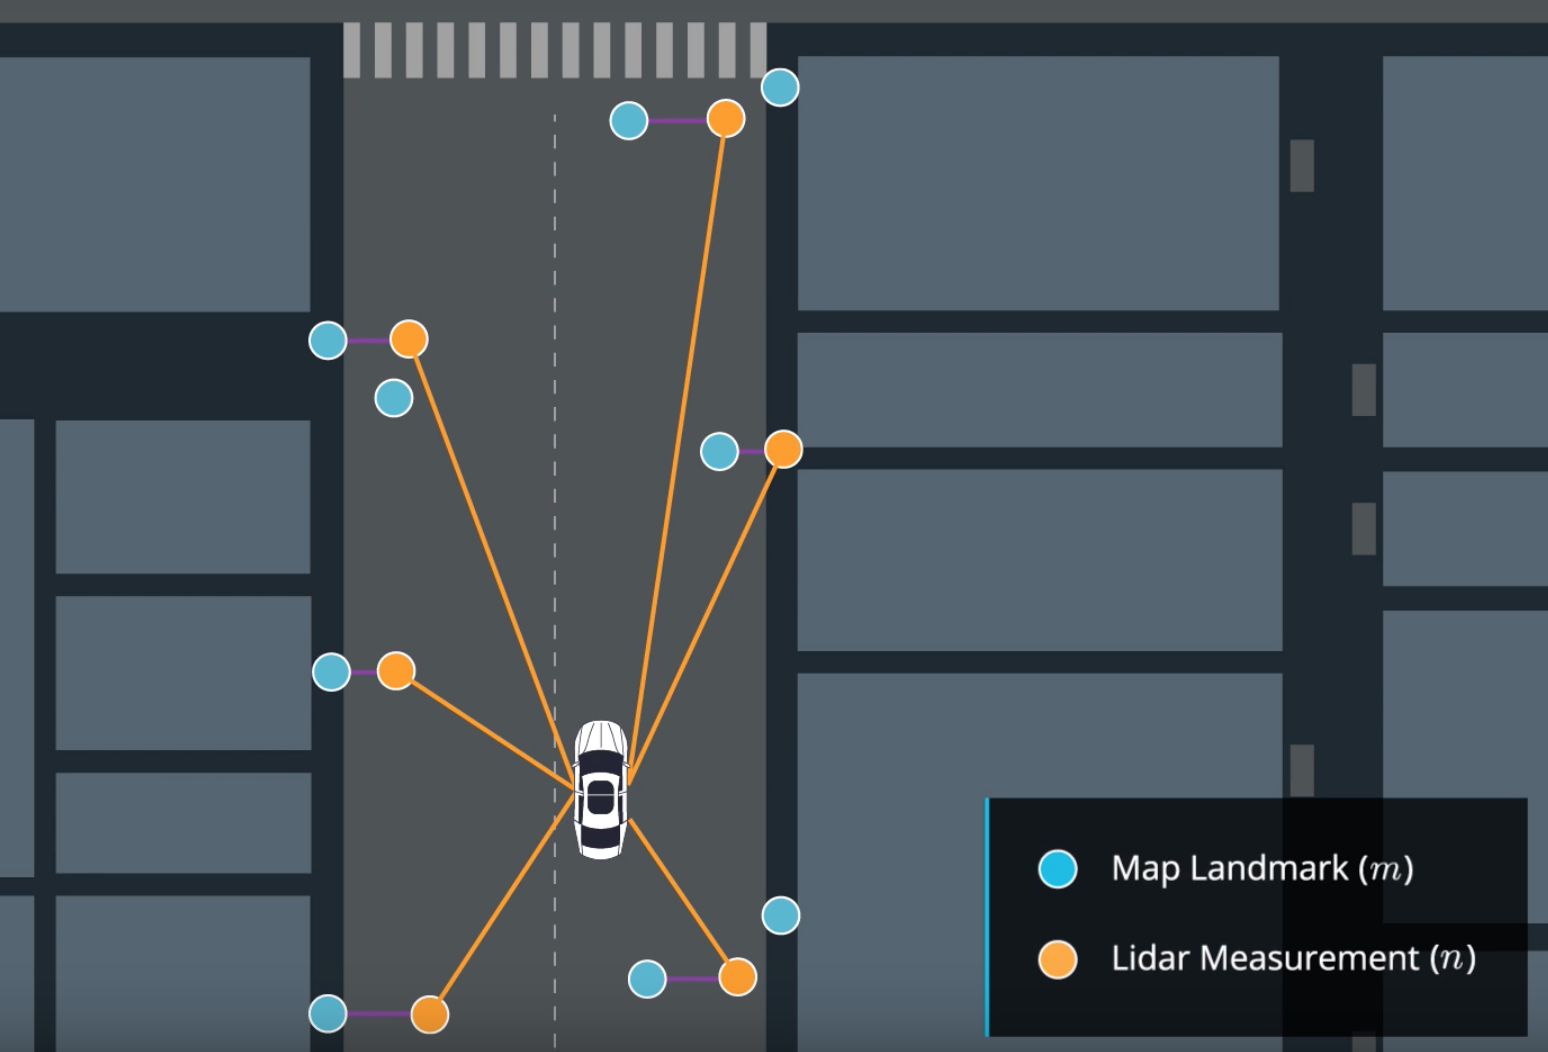 Self-Driving Cars & Localization - Towards Data Science